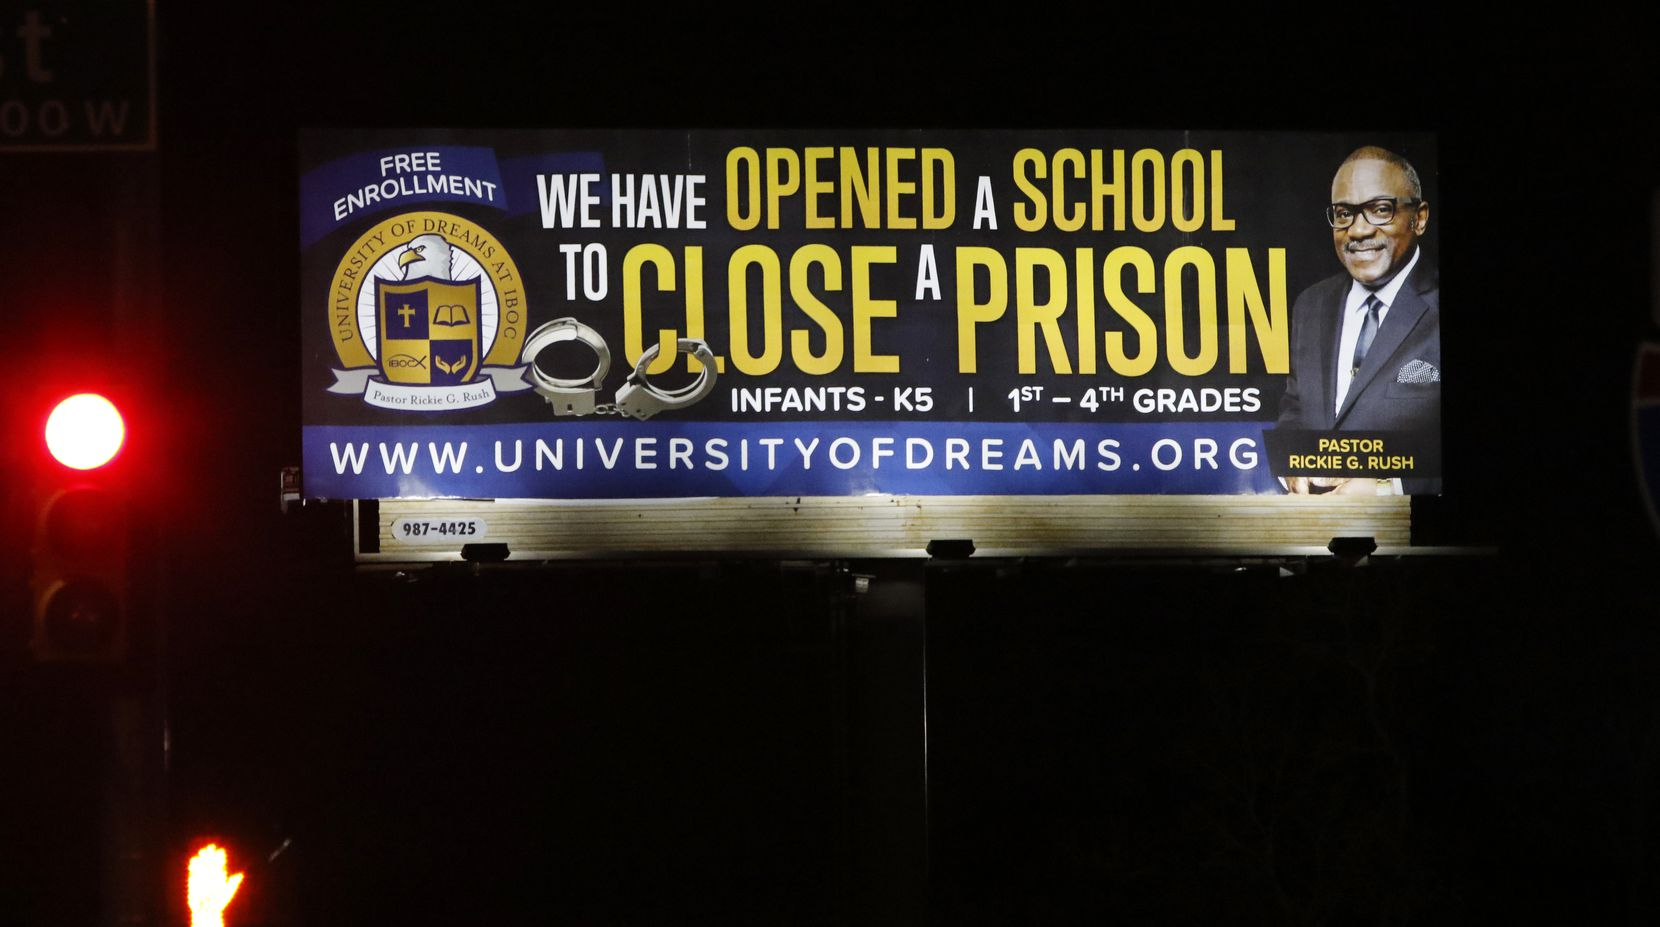 A billboard for University of Dreams, the school at Pastor Rickie Rush's Inspiring Body of Christ Church in Dallas, towers over U.S. Highway 67 at Kiest Boulevard.